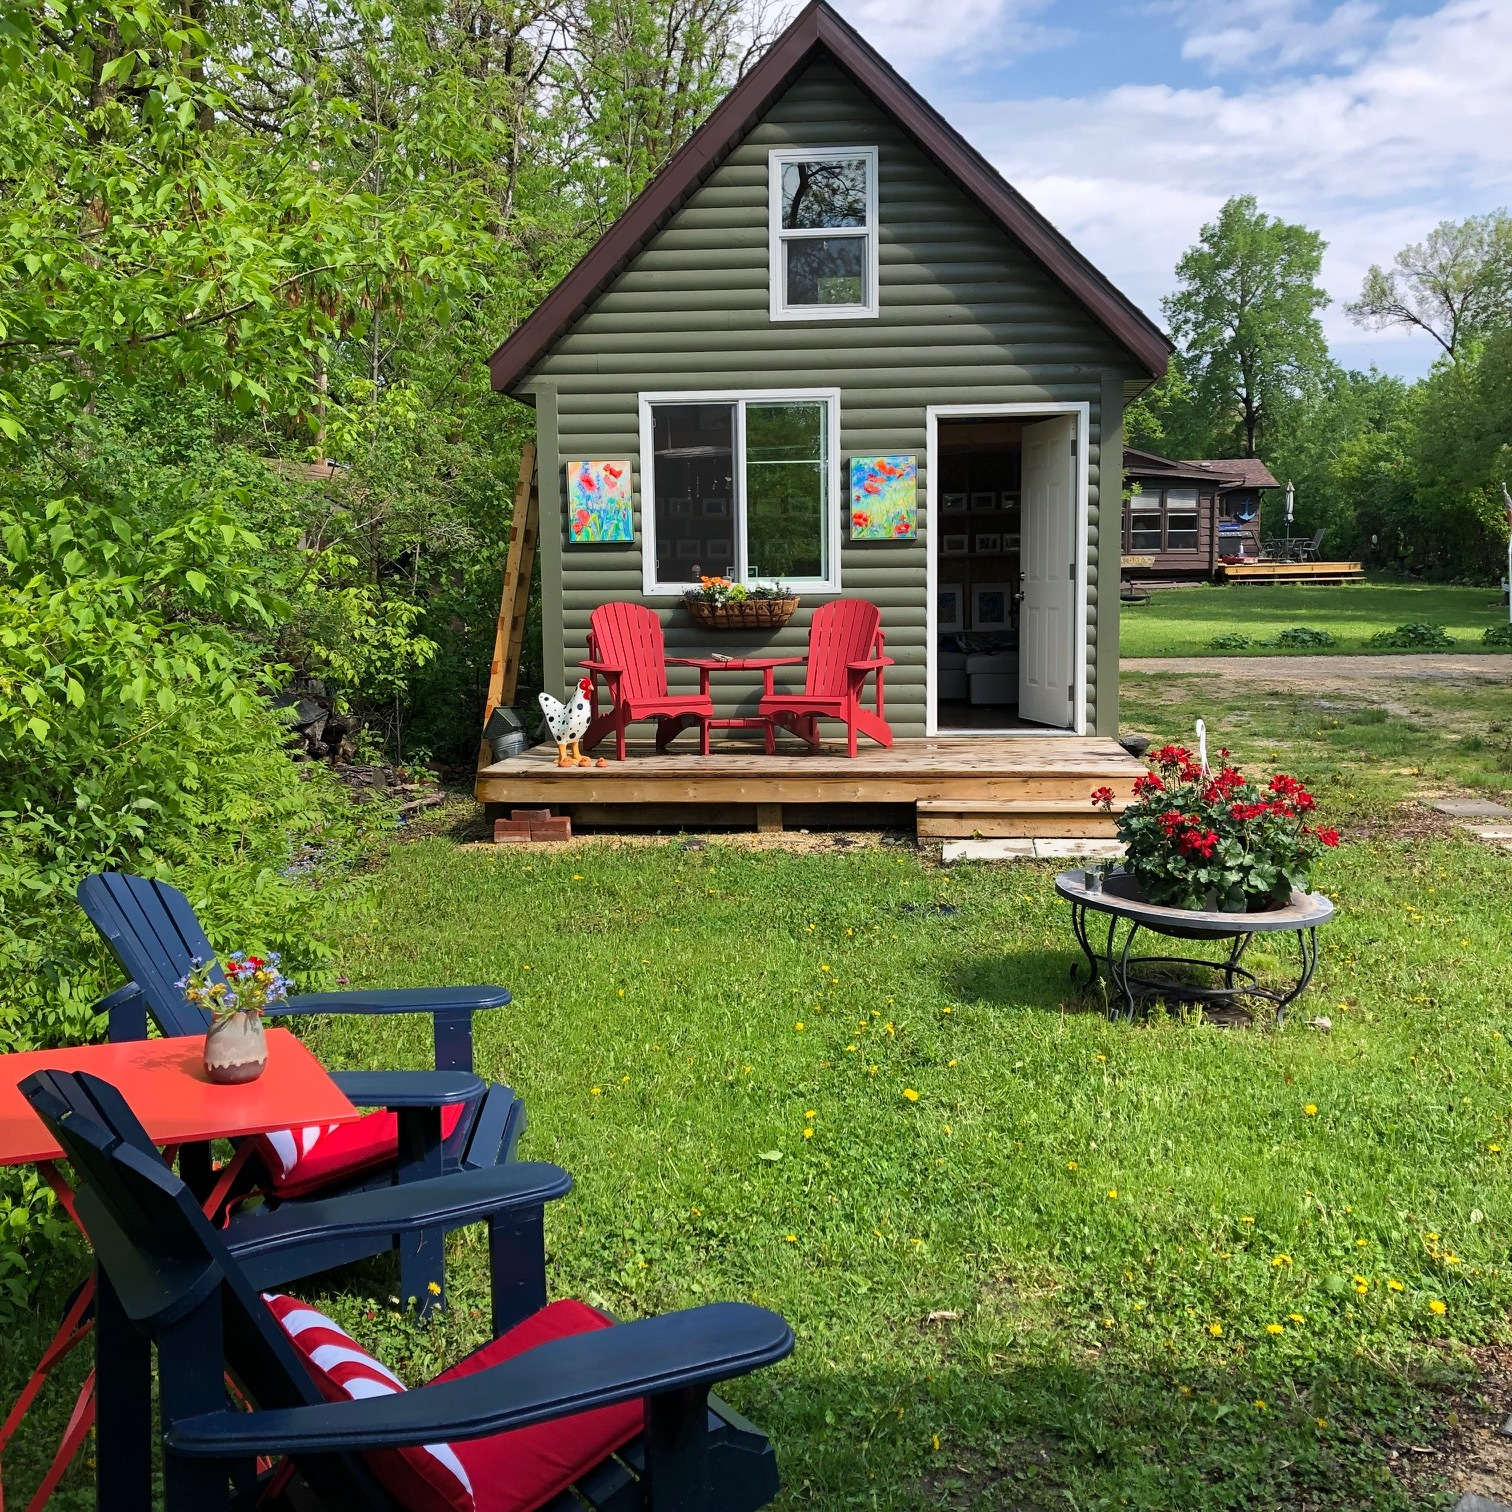 The bunkie ready for company in June.